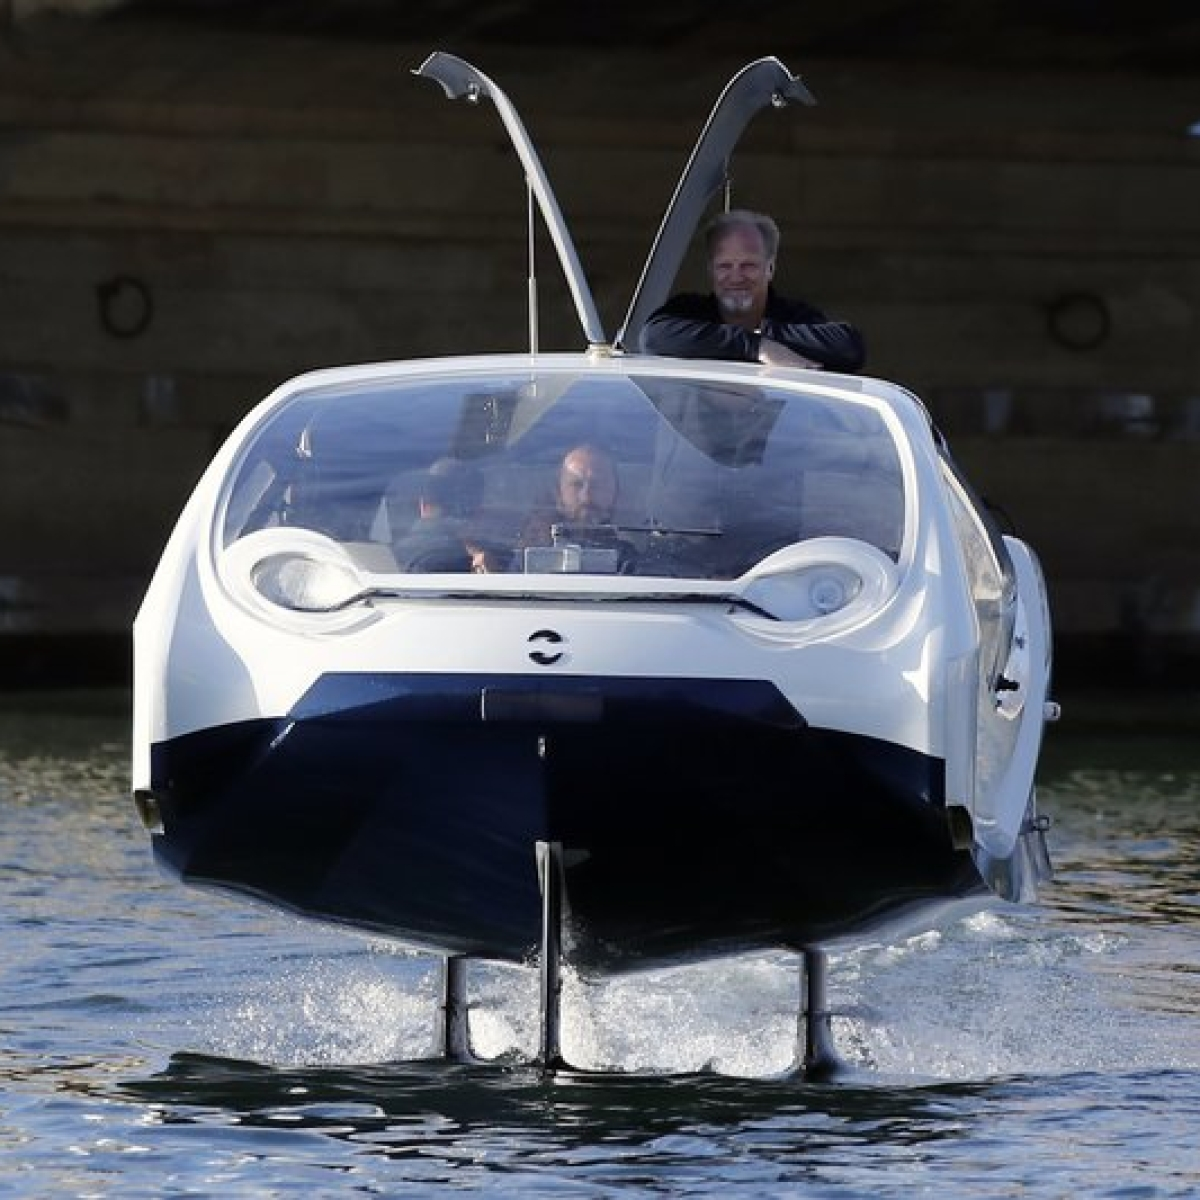 Paris tests eco-friendly bubble-shaped water taxi